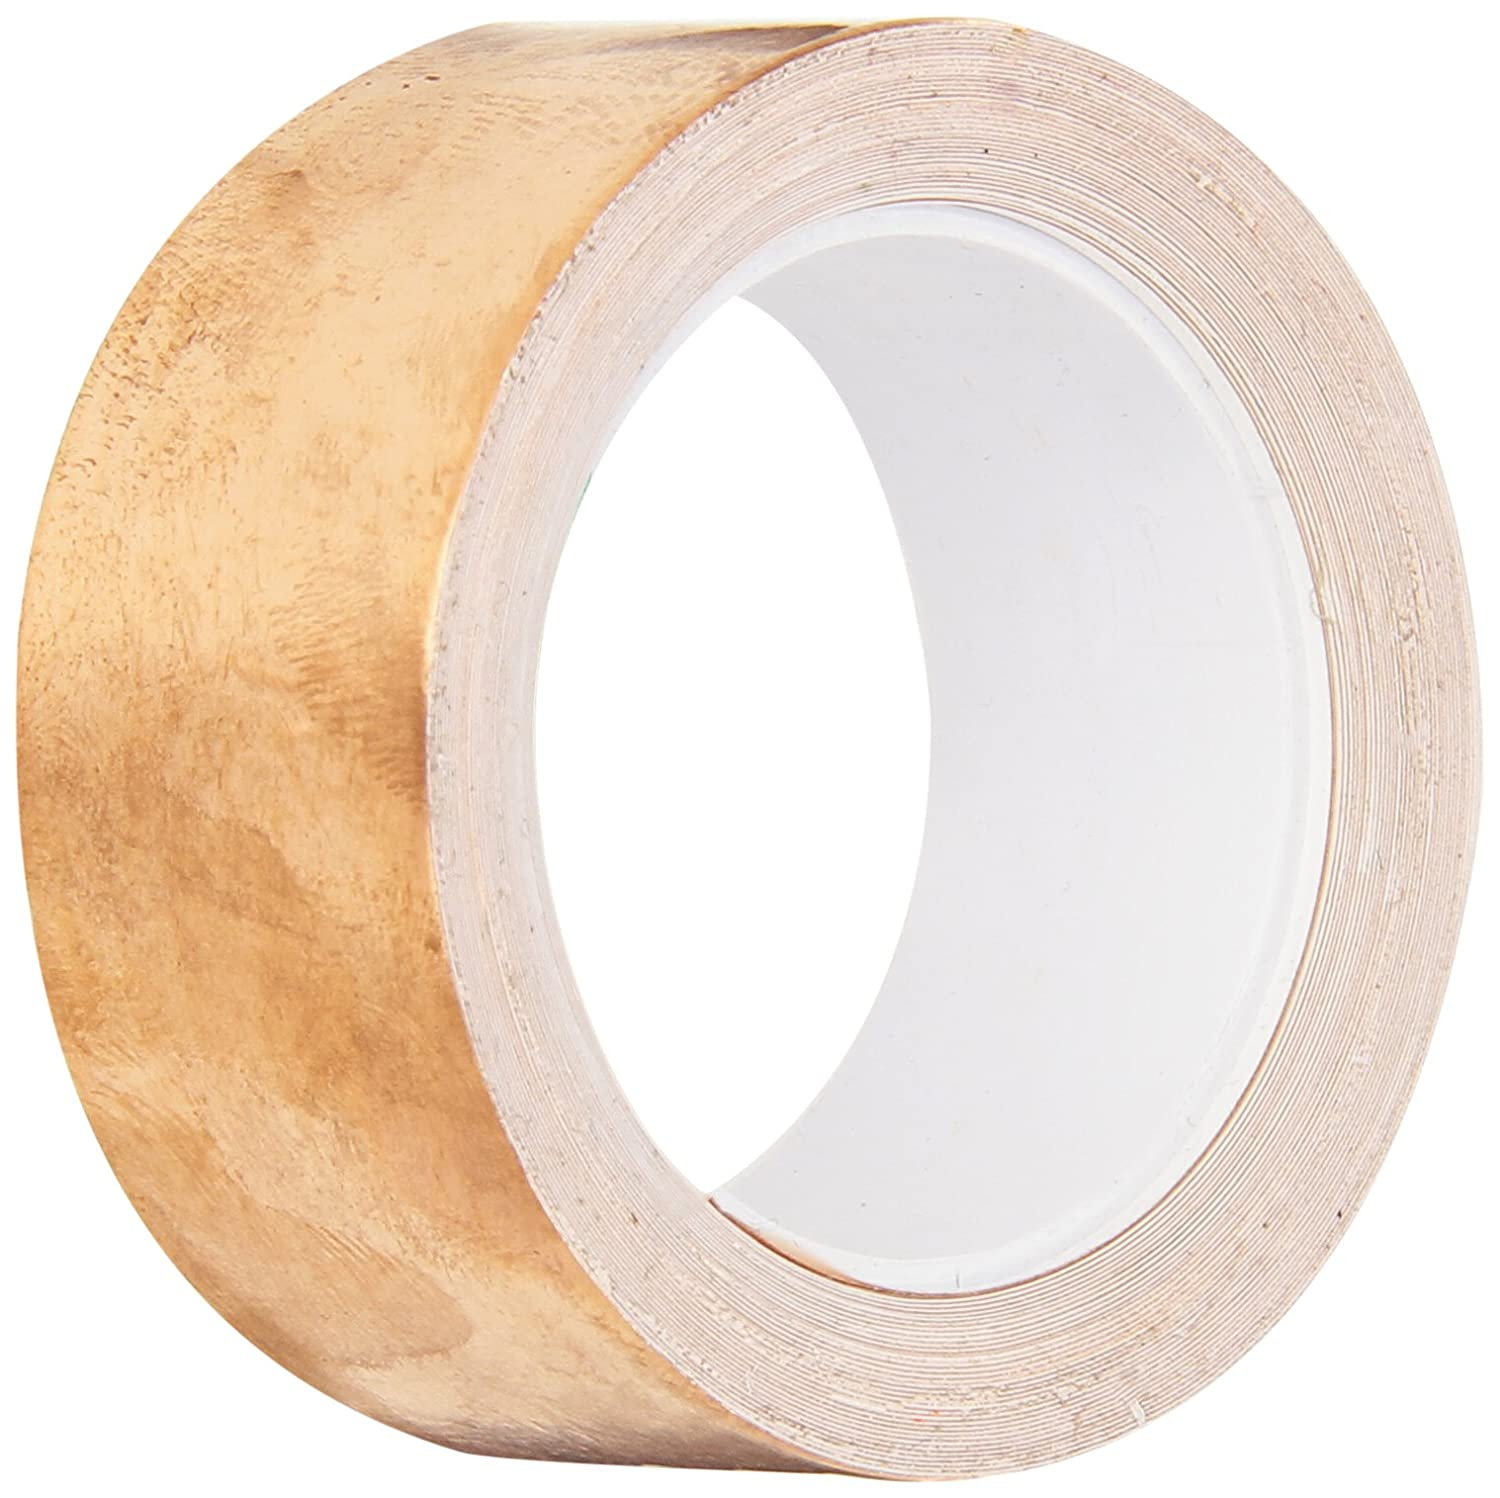 "TapeCase Copper Foil Tape with Acrylic Adhesive, Converted from 3M 1126, 36 yd Length, 3"" Width, Roll"